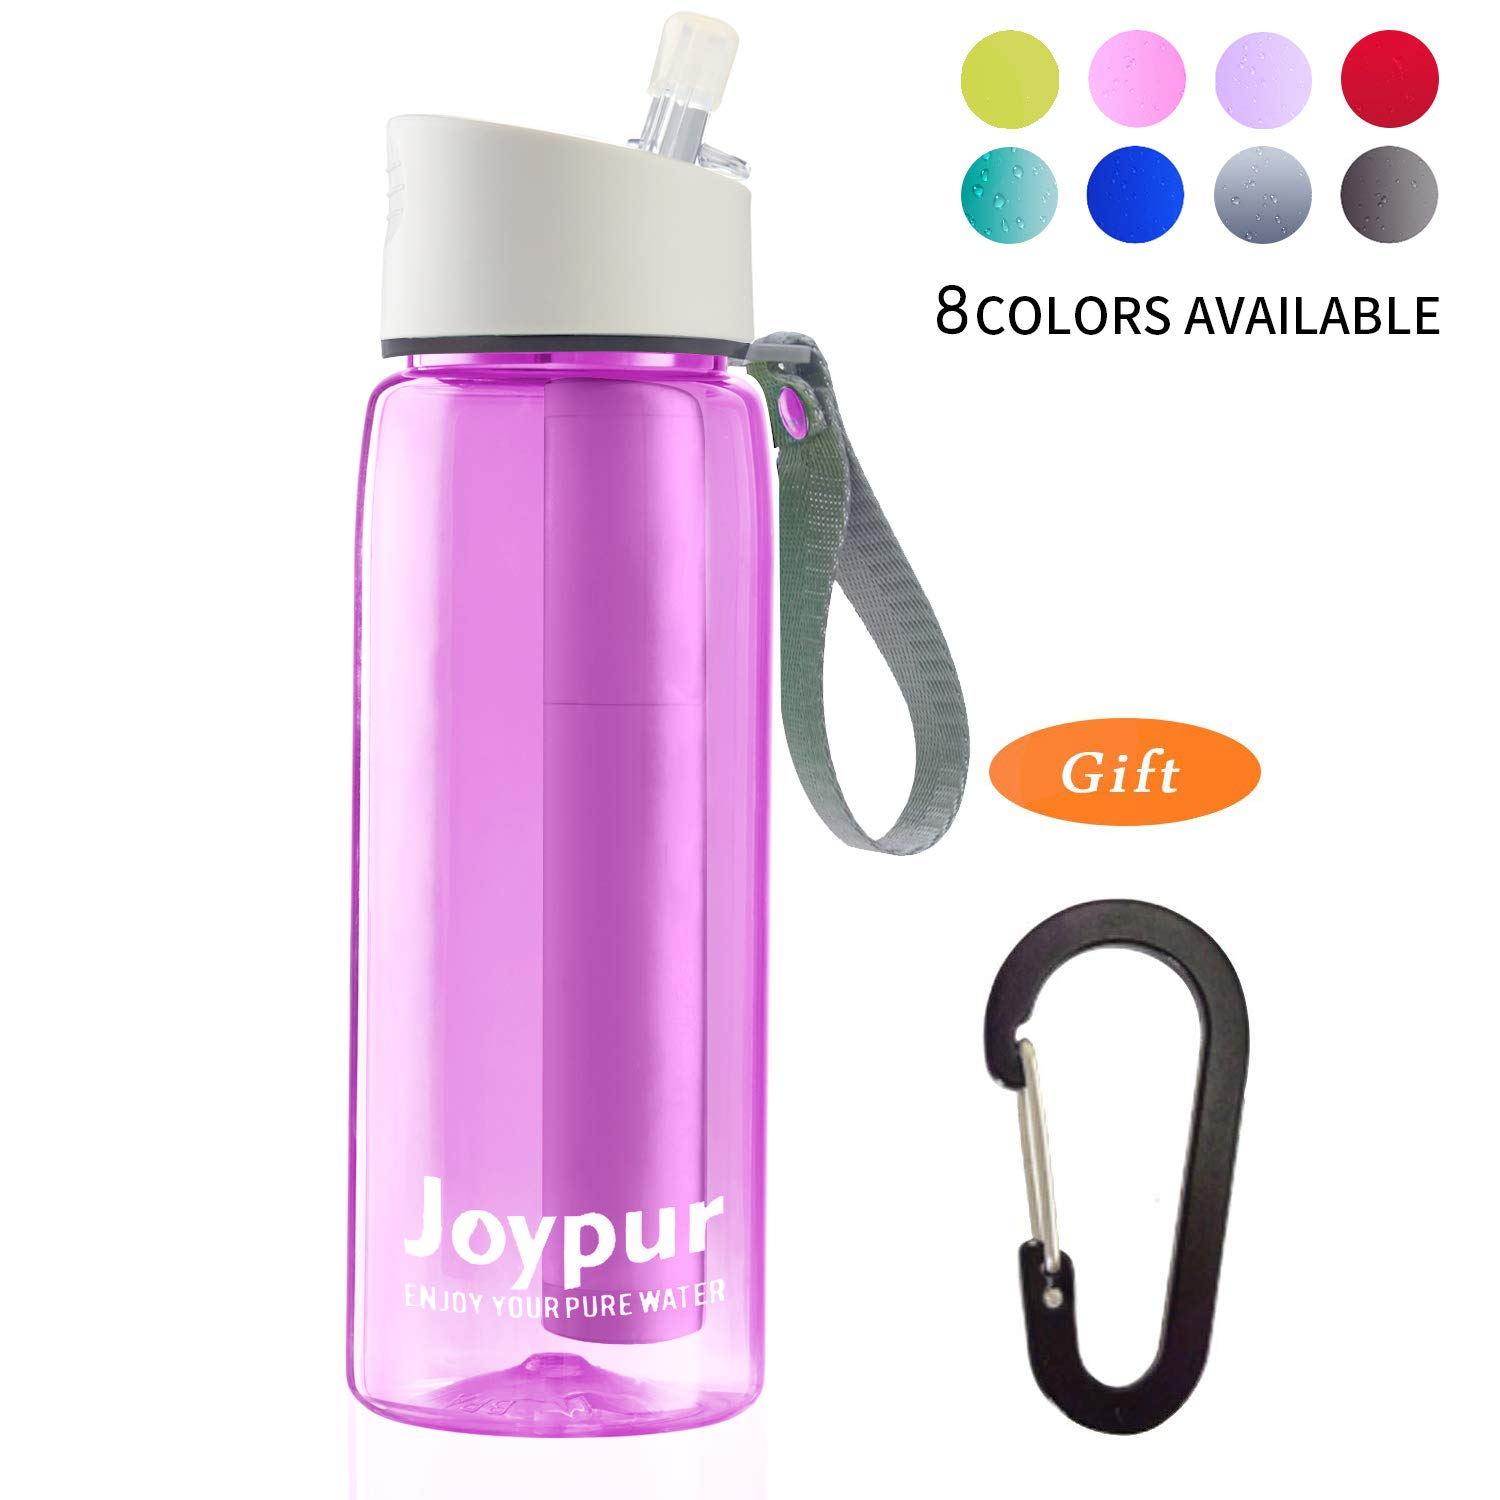 joypur Outdoor Filtered Water Bottle - Camping Water Filter with 3-Stage Integrated Water Purifier for Travel Hiking Backpacking Pink by joypur